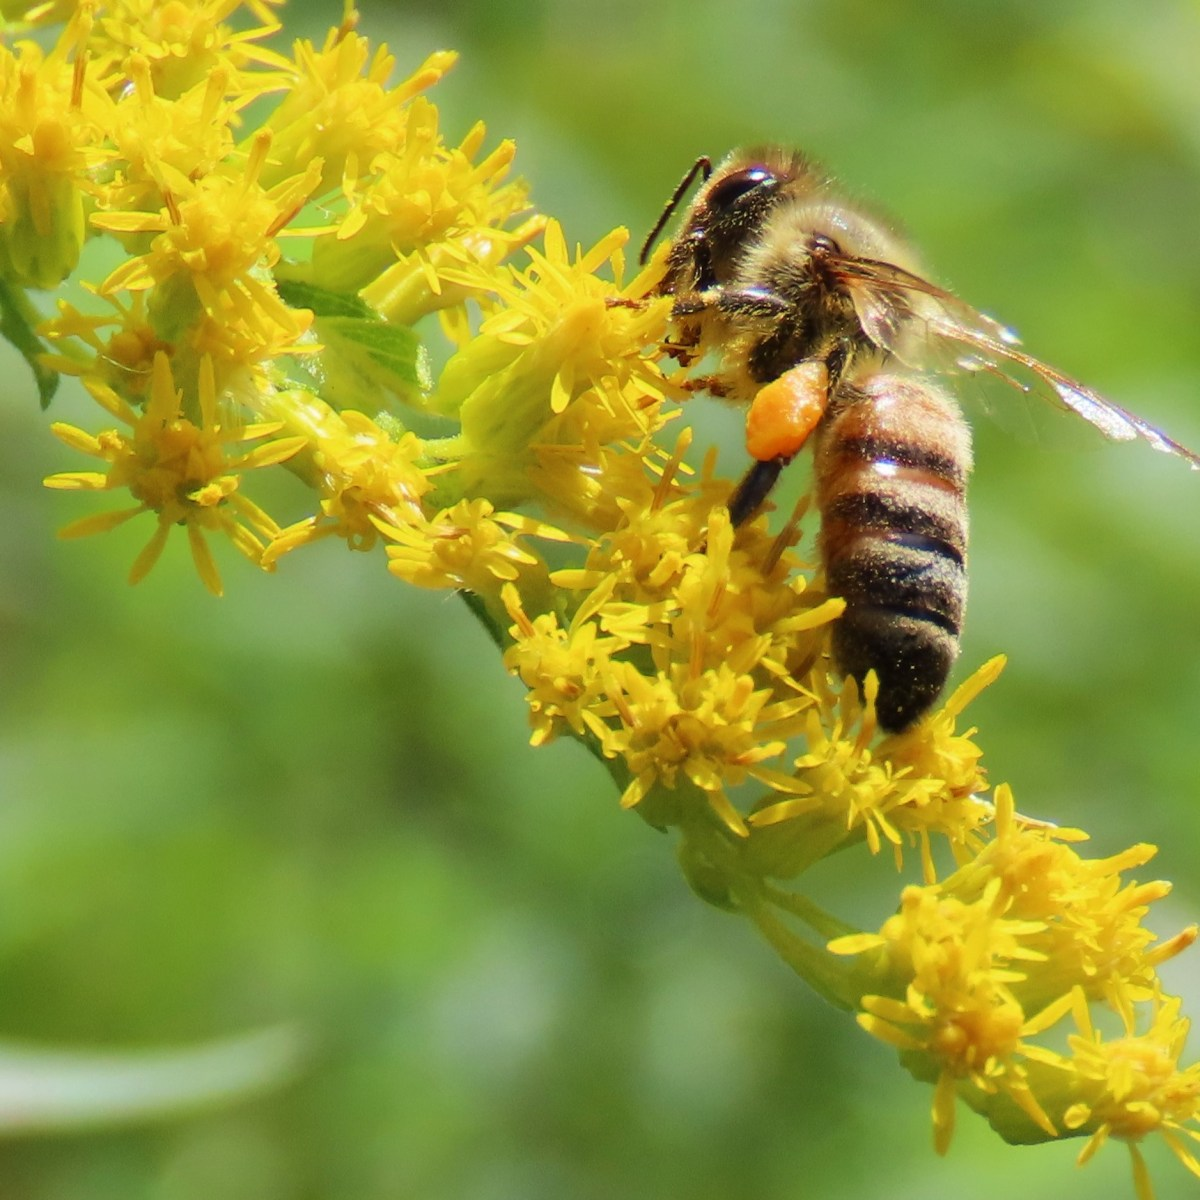 A honey bee harvests pollen from goldenrod blooms